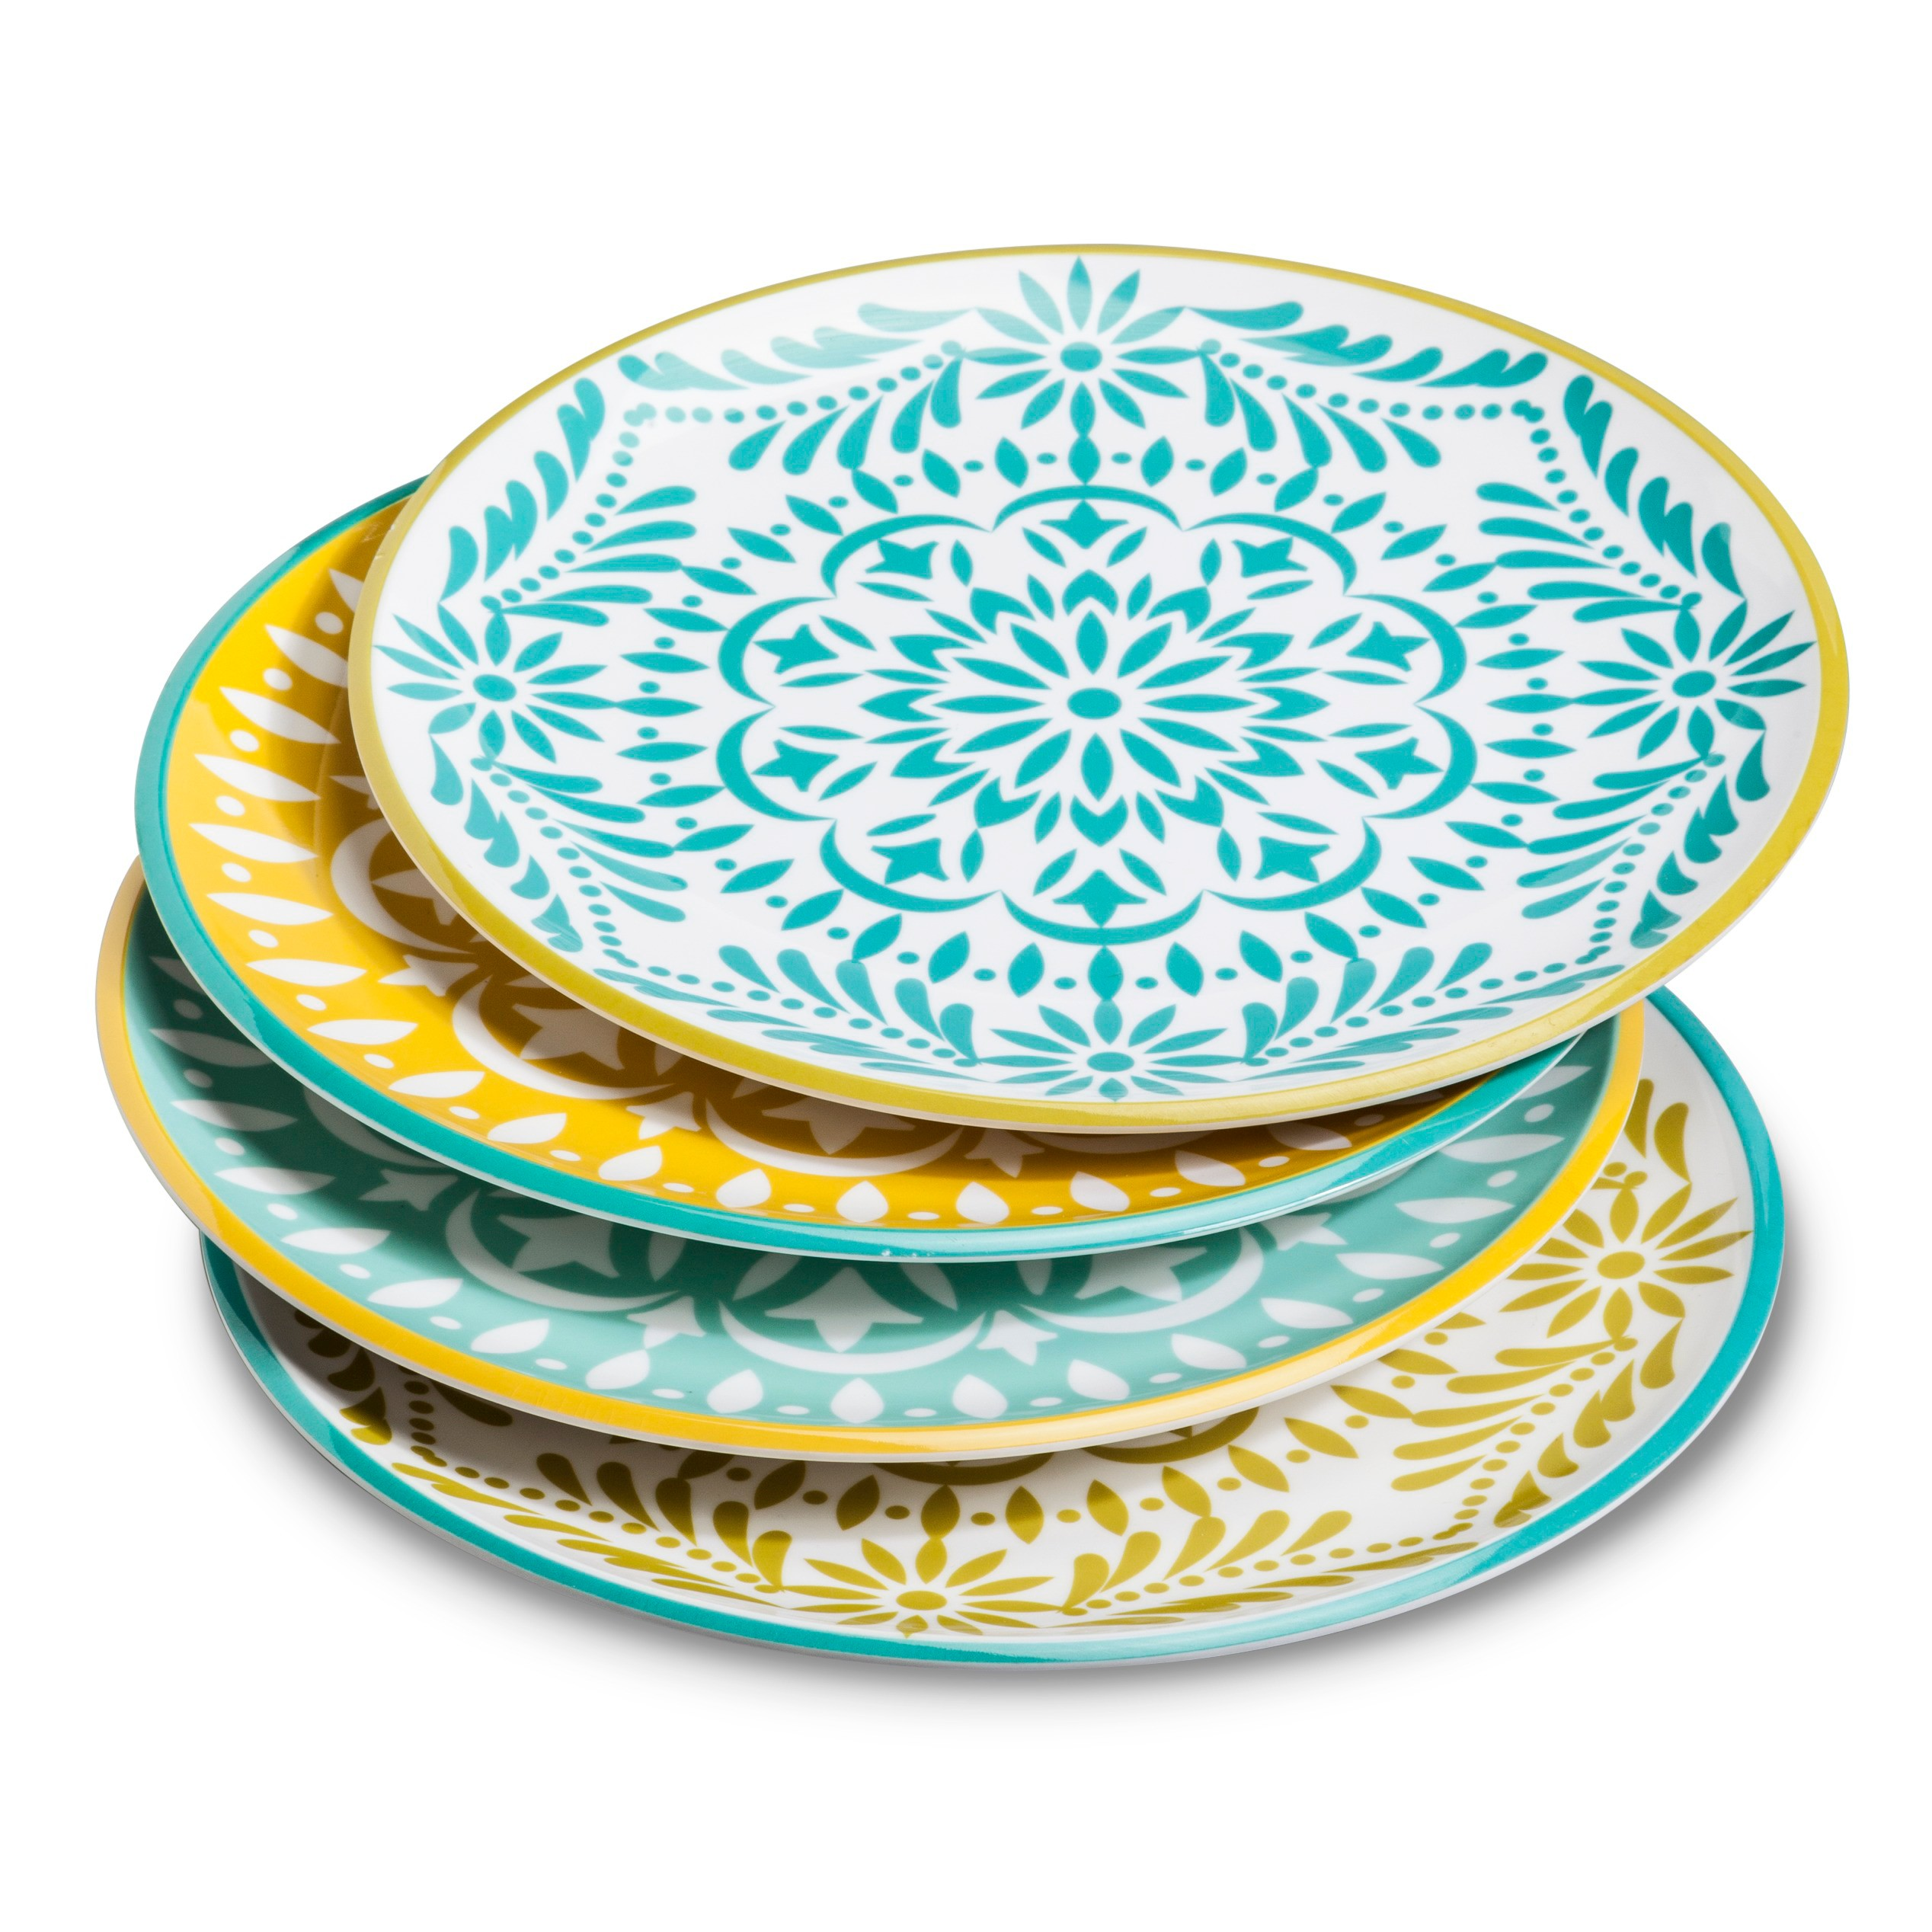 $26.00/set of 4 These Target plates are a perfect budget friendly option for summer dining!  sc 1 st  Cococozy : summer dinnerware sets - pezcame.com